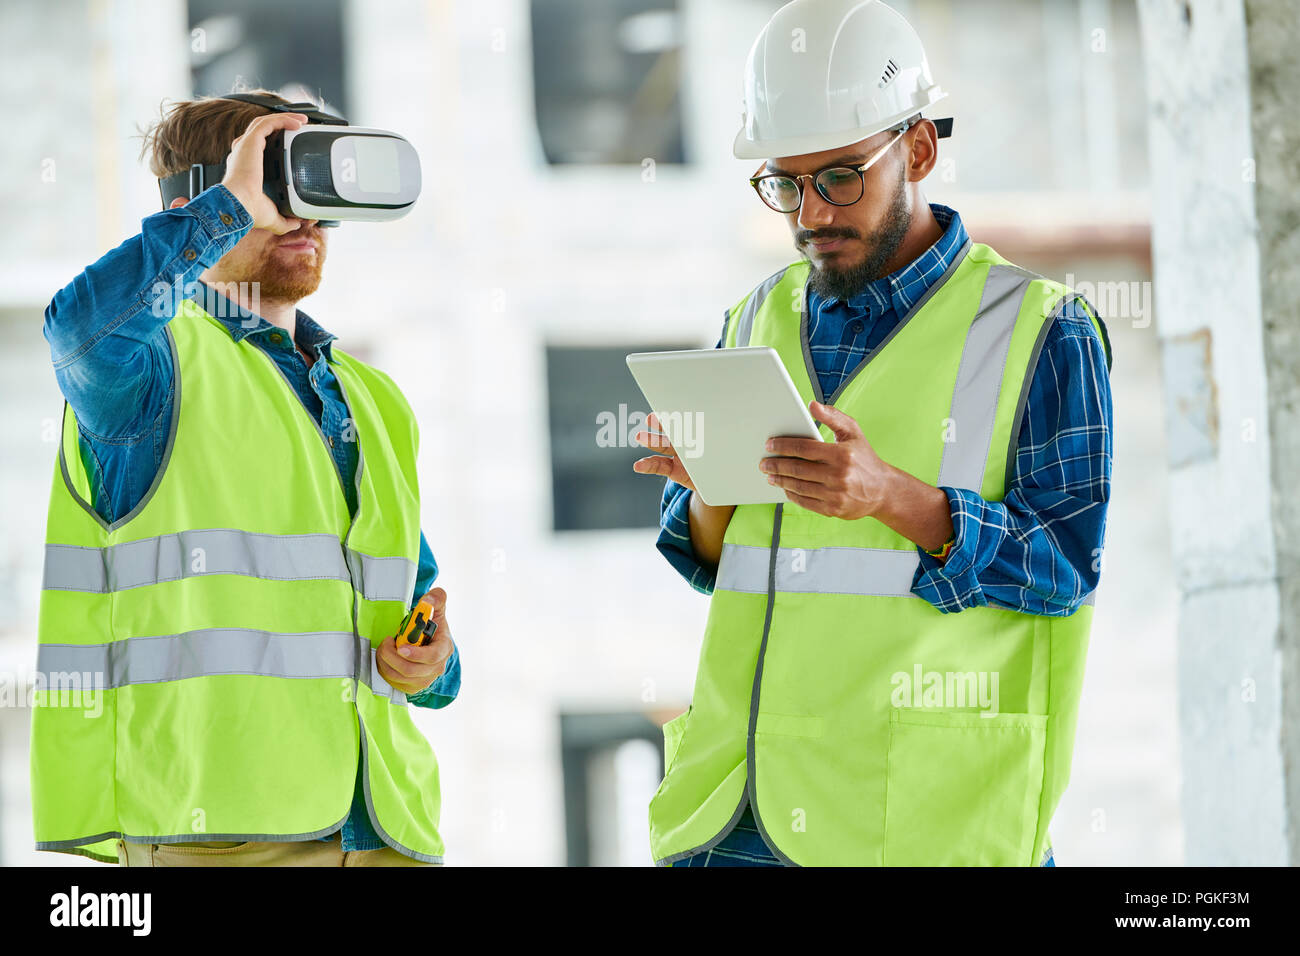 Waist up portrait of two contemporary workers using VR gear to visualize projects  on construction site - Stock Image